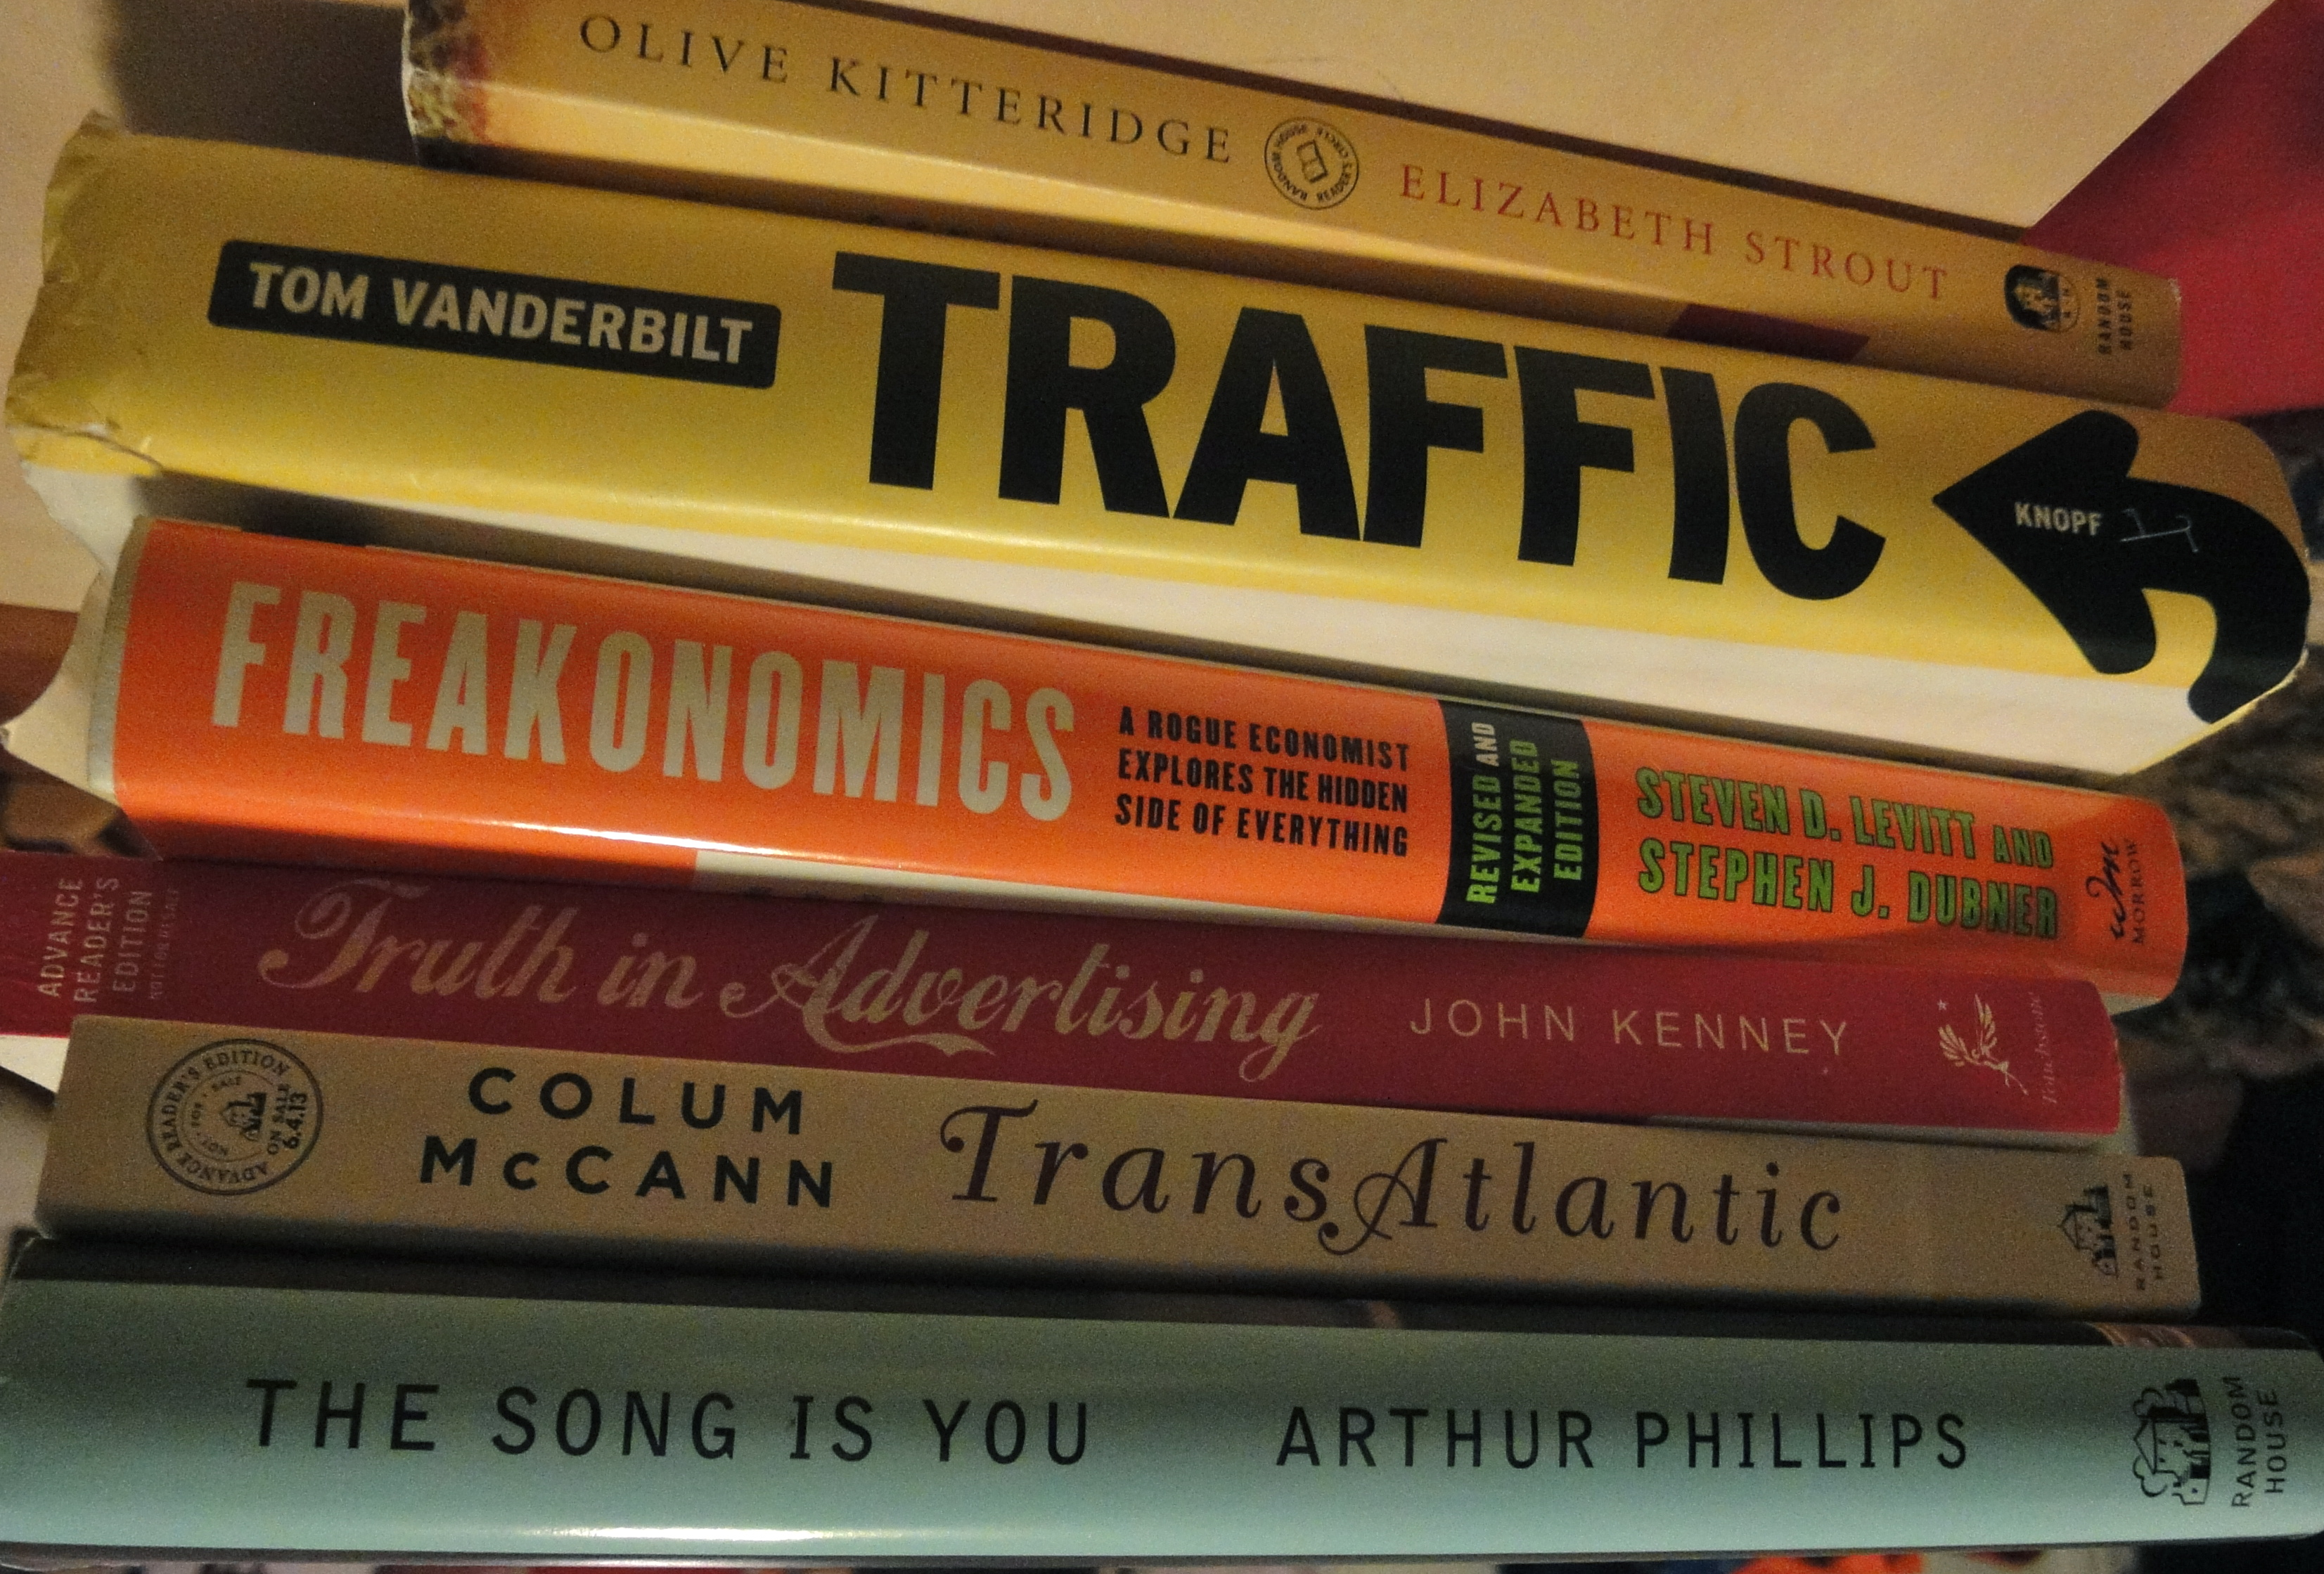 Of The Books In The Photo Above, I Read Olive Kitteridge, Transatlantic,  The Song Is You, And About Half Of Traffic The Others Remain Unread (by  Me)